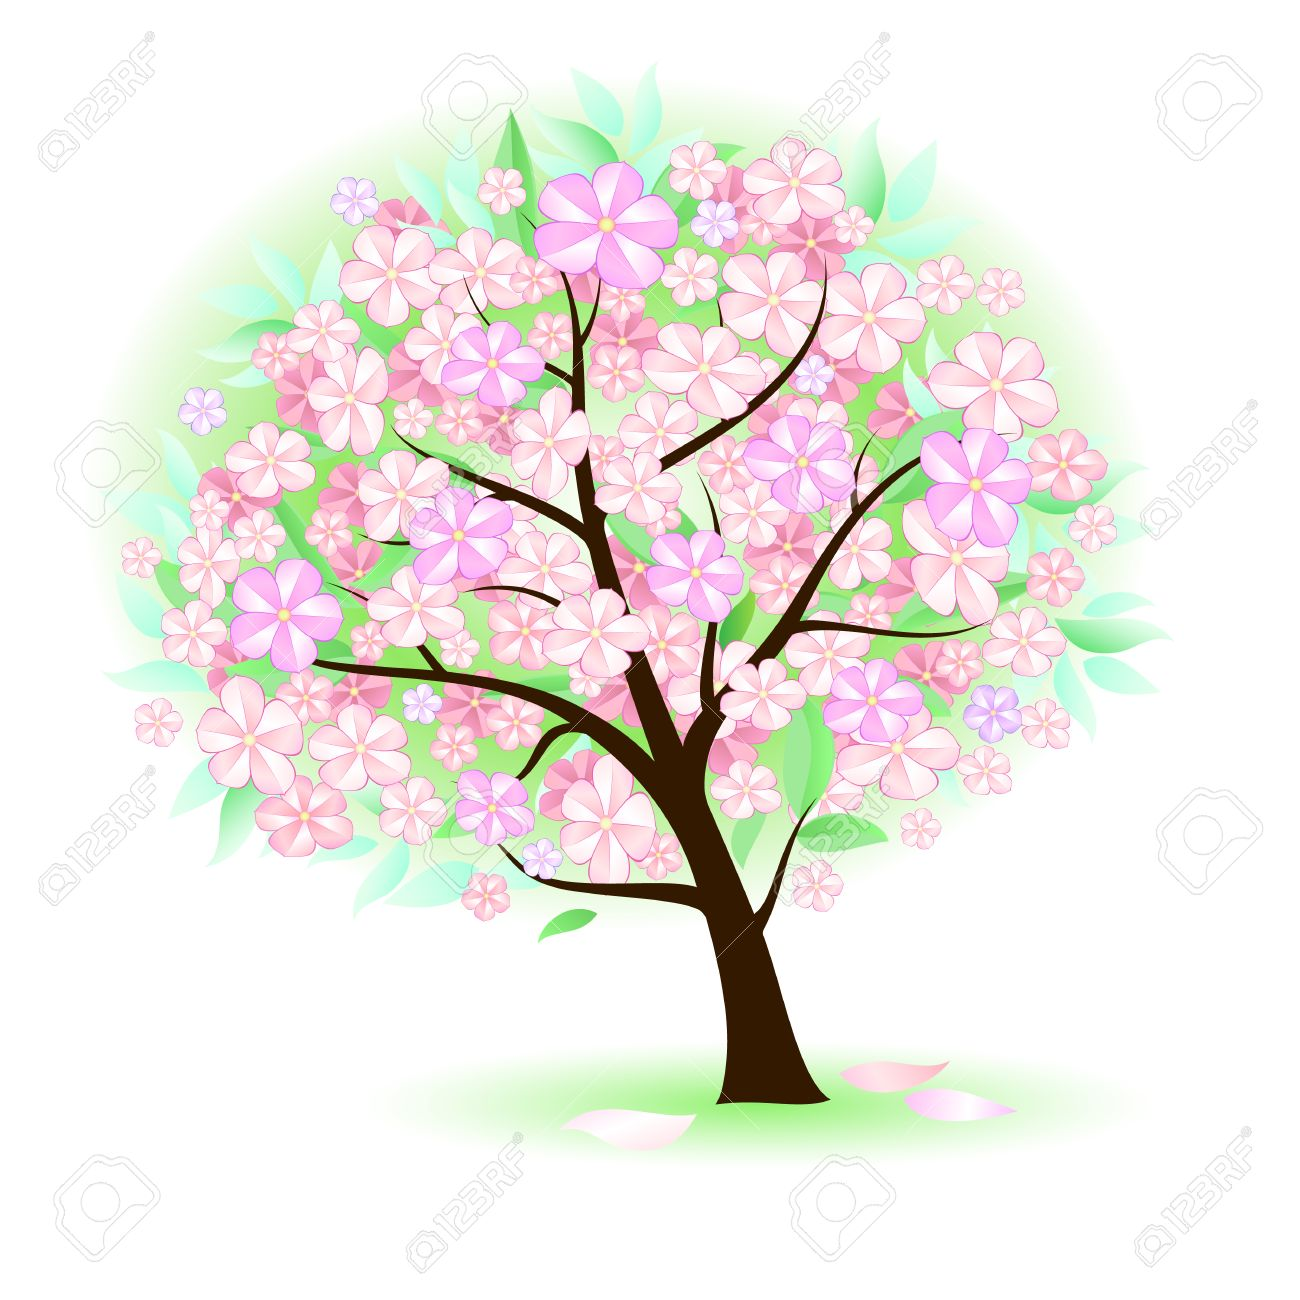 Stylized Tree With Leafs And Big Flowers Illustration On White